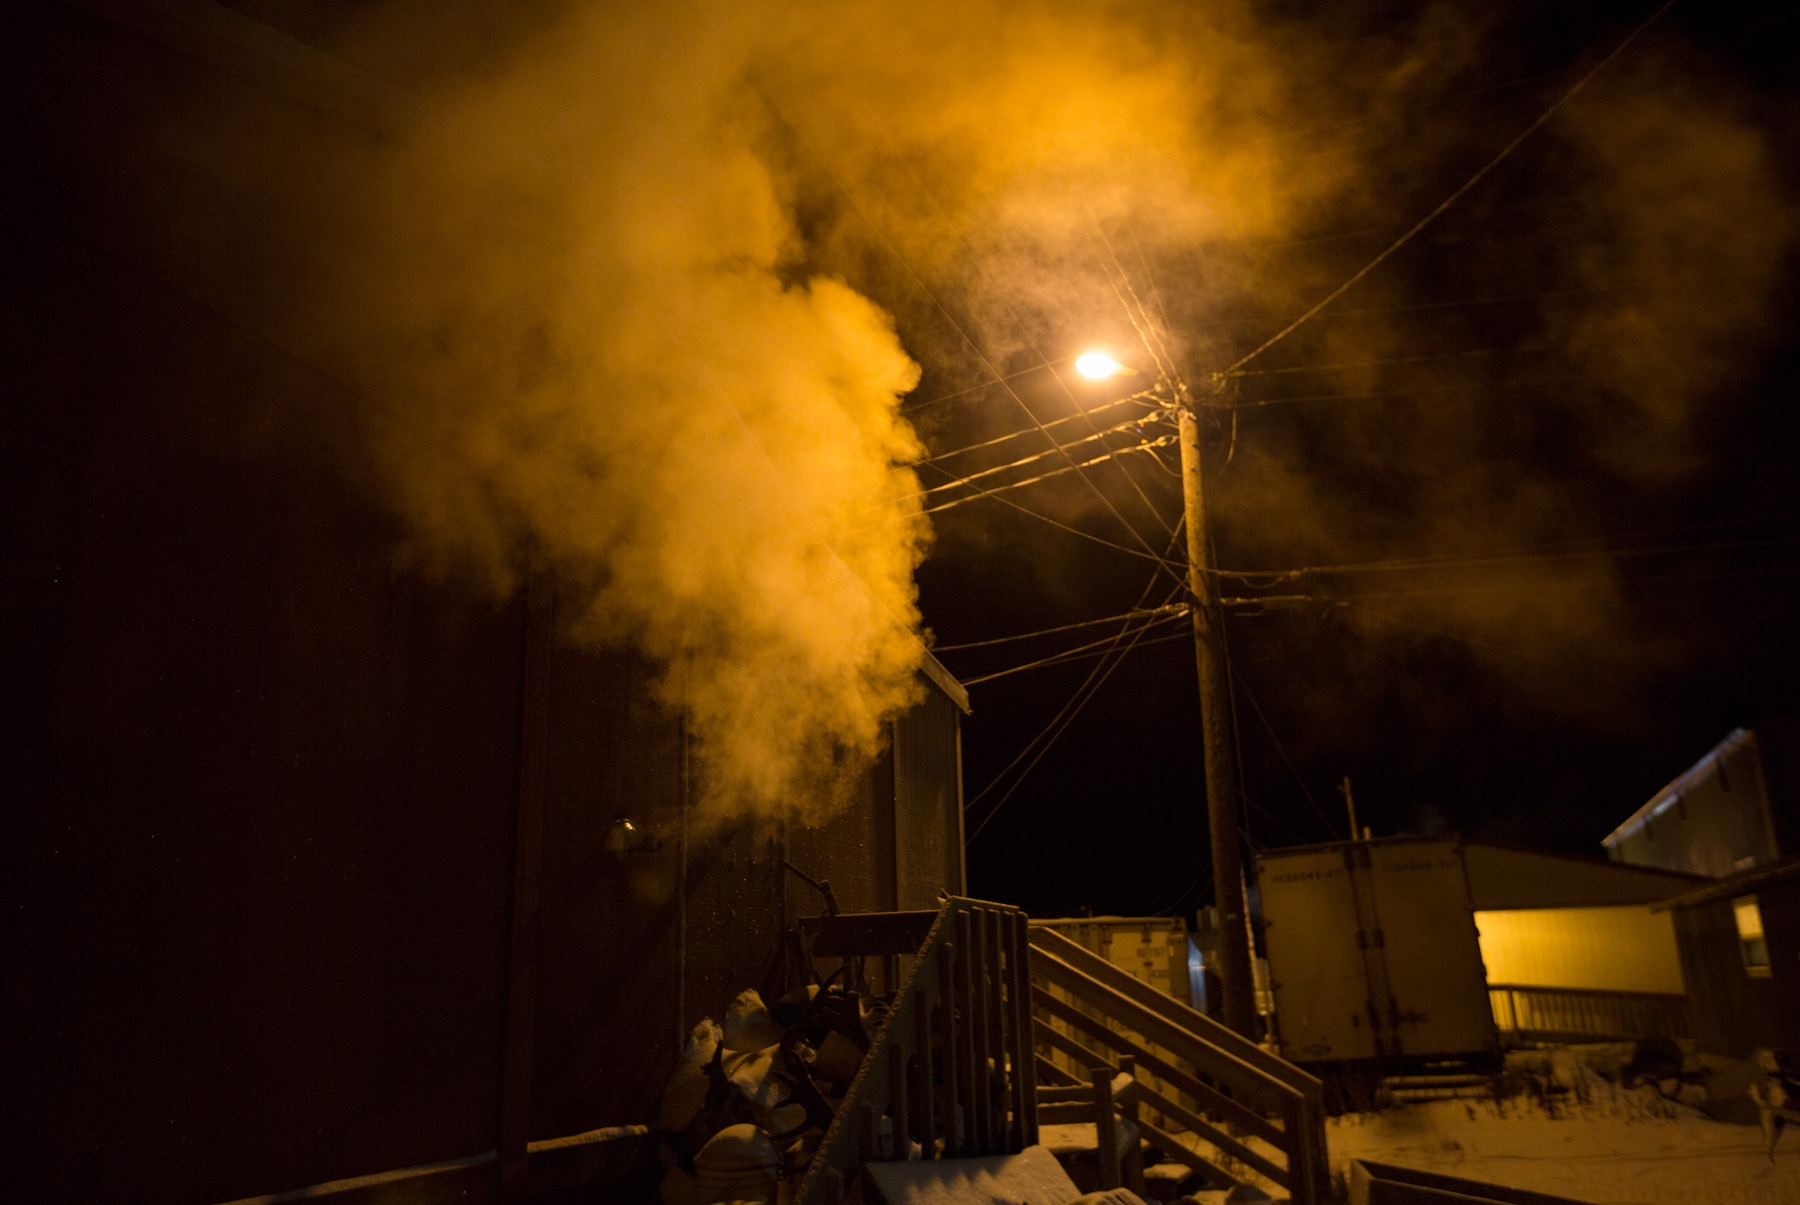 During a frigid night, smoke pours out of the side chimney of a home in Shishmaref, Alaska.